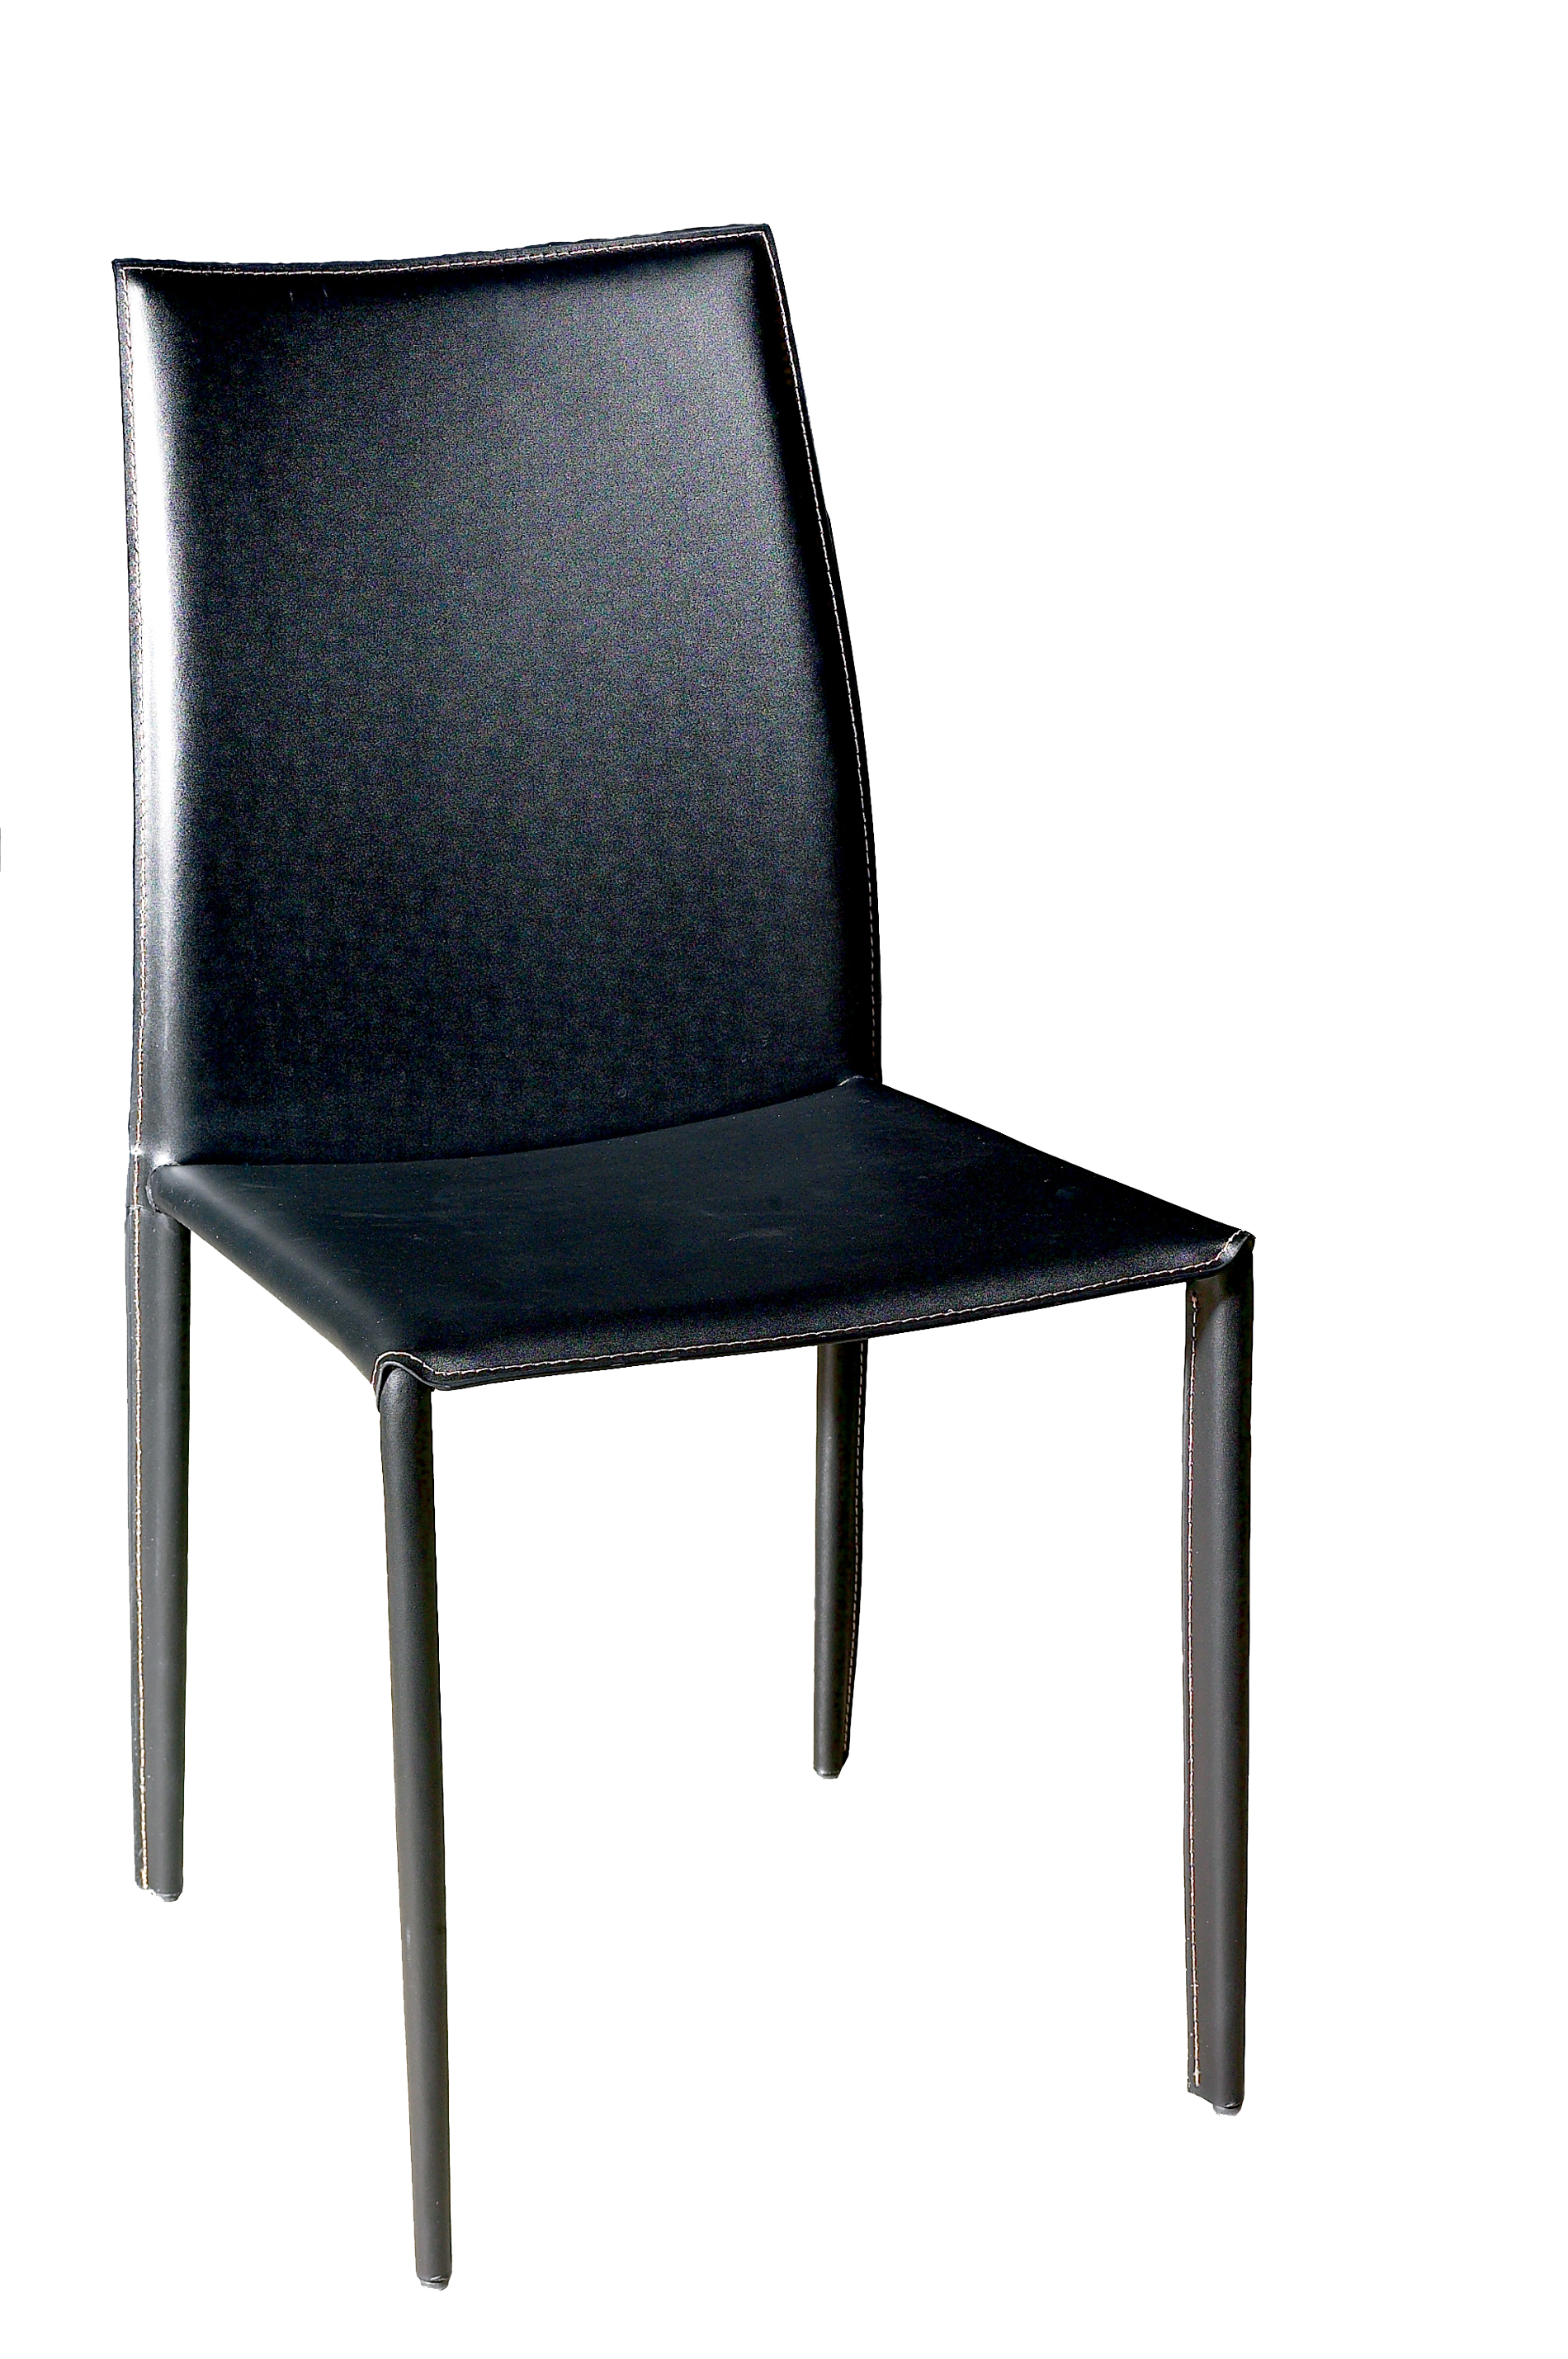 Black upholstered dining chairs - Dining Room Furniture Dining Chair Black Leather Dining Ch